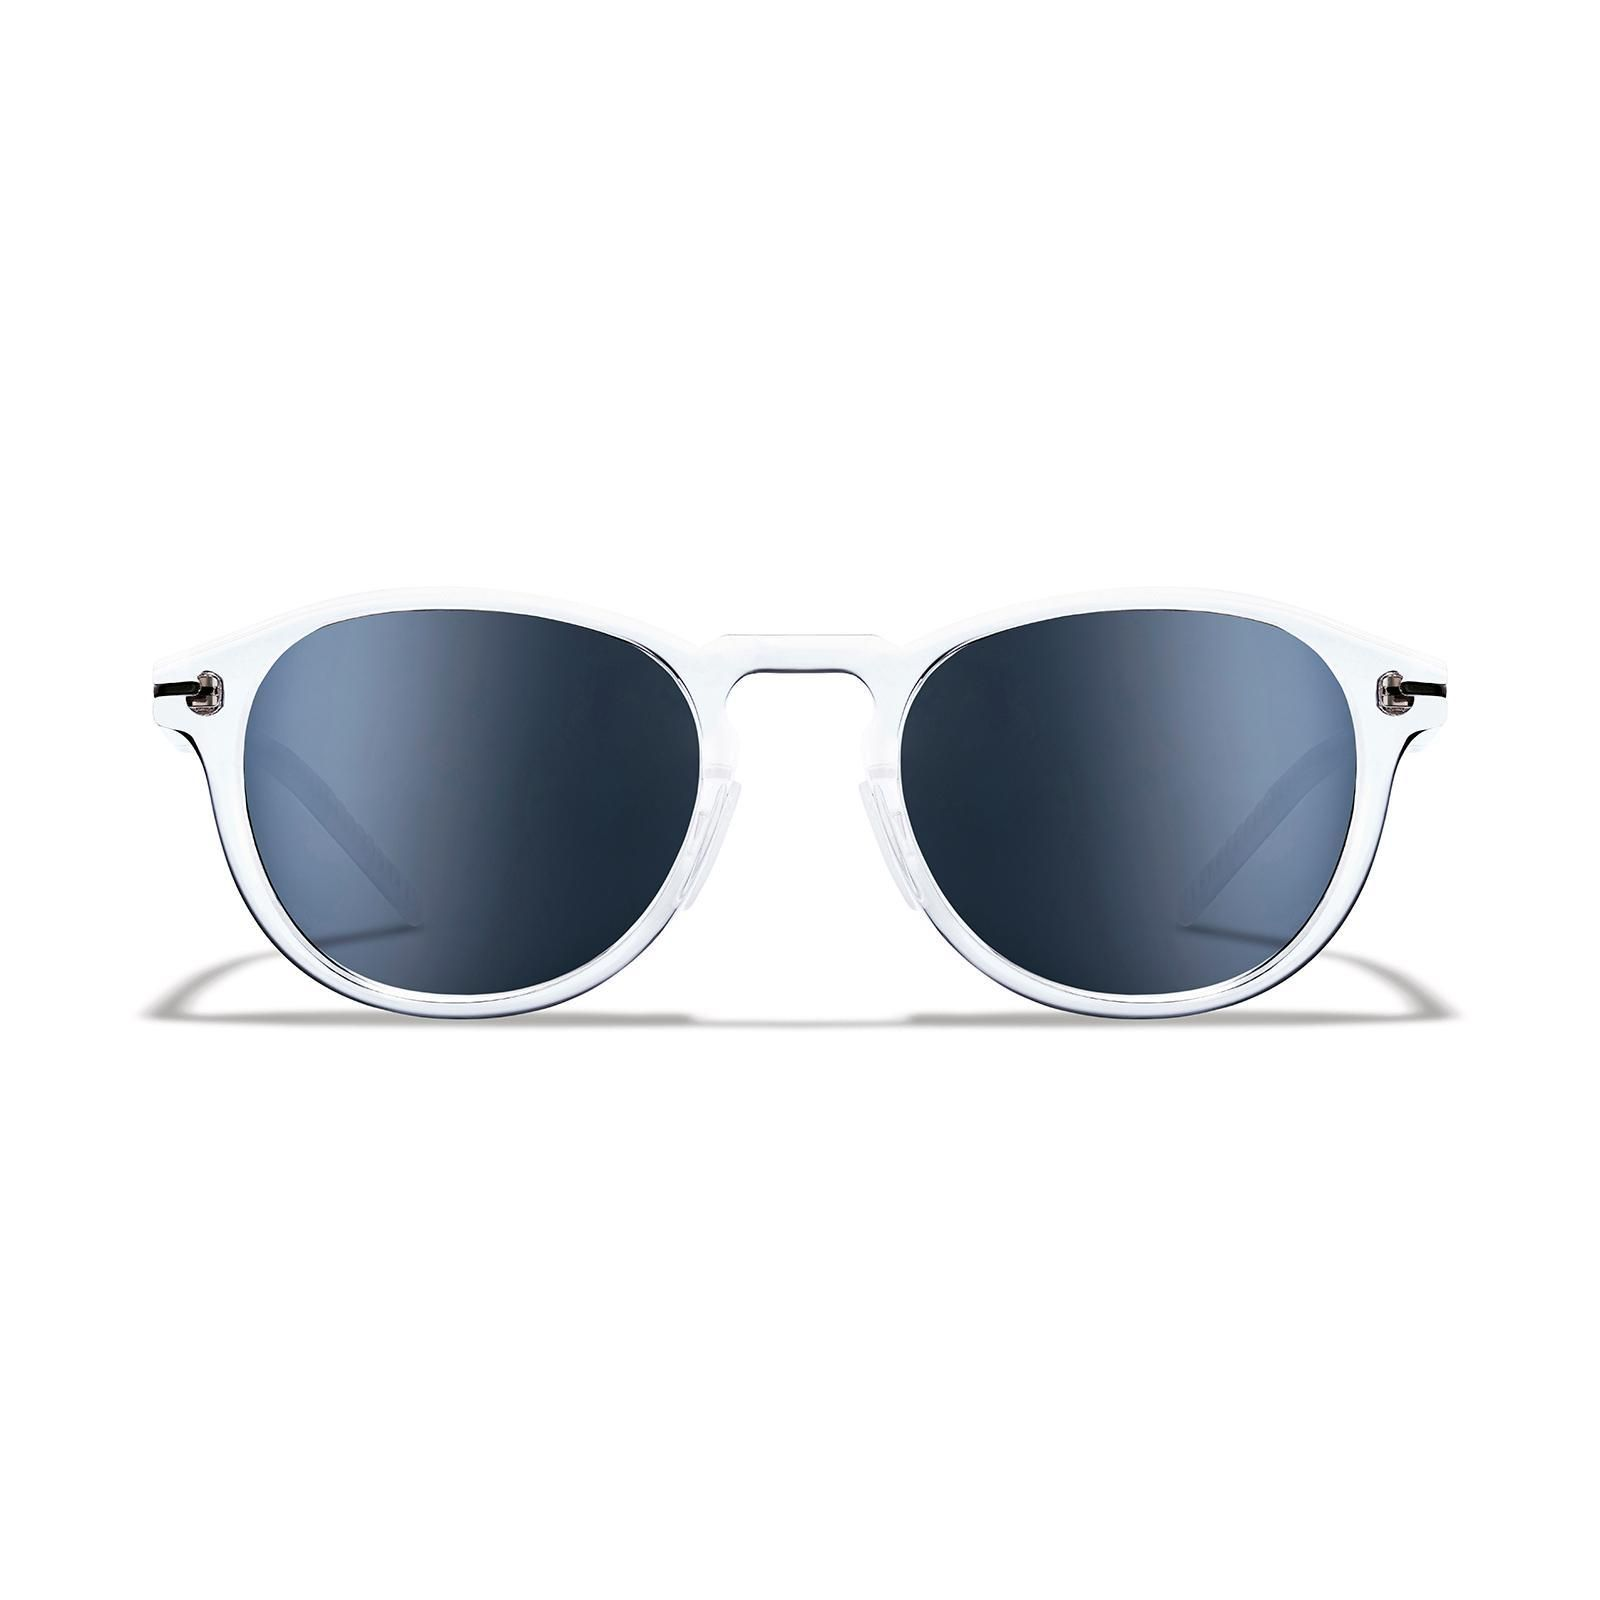 27d20360d358 Clear Frame - Black Mirror Lens Black Mirror, Mirrored Sunglasses, Lens,  Black Vanity